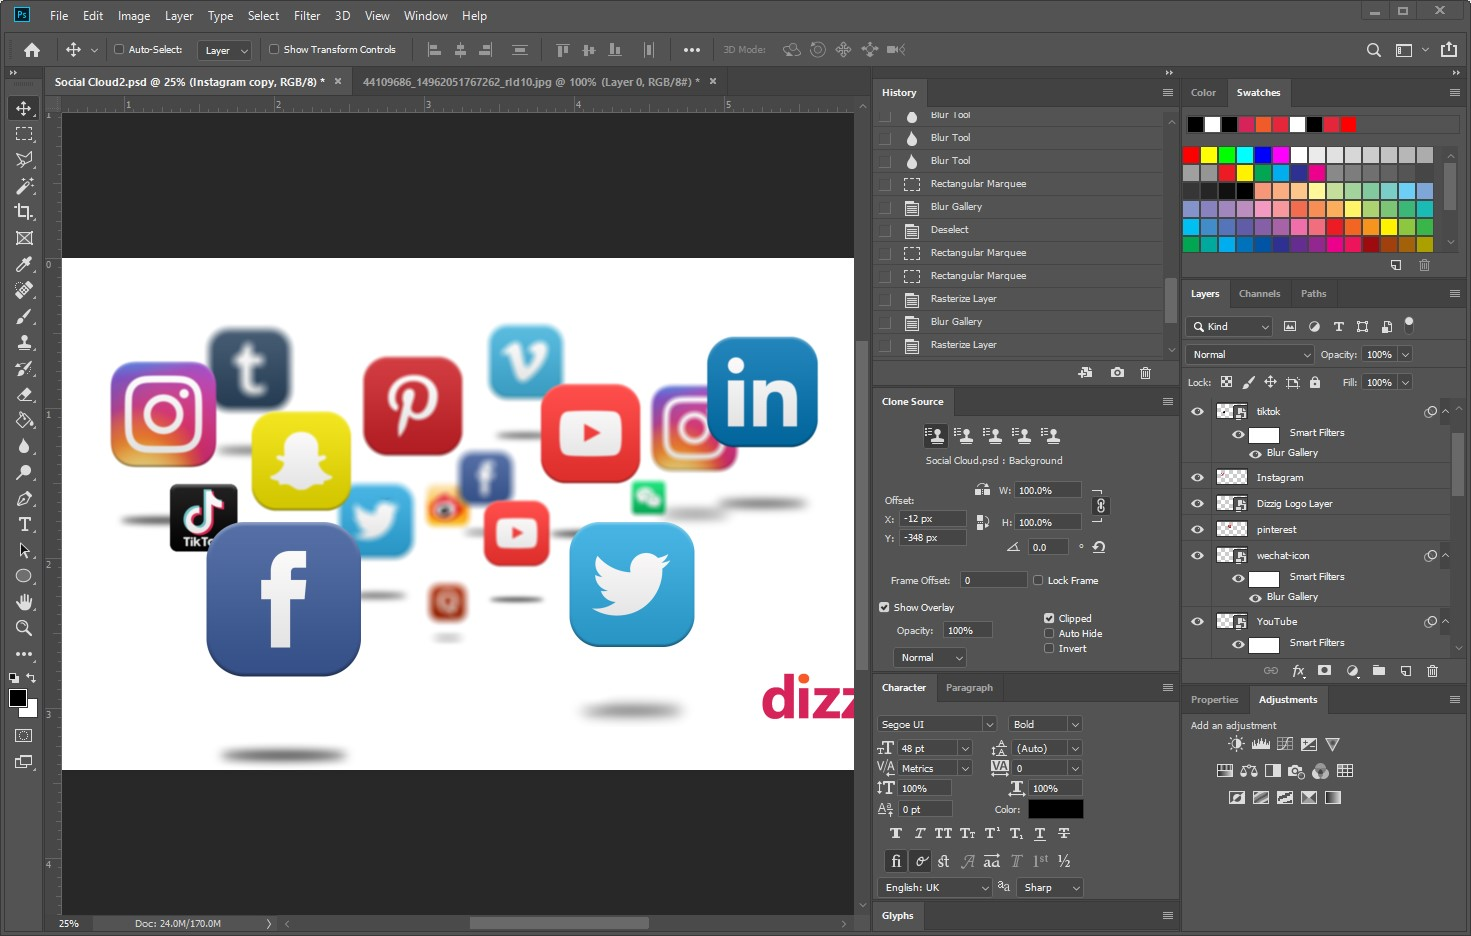 3 Best Tools for Creating Social Media Images